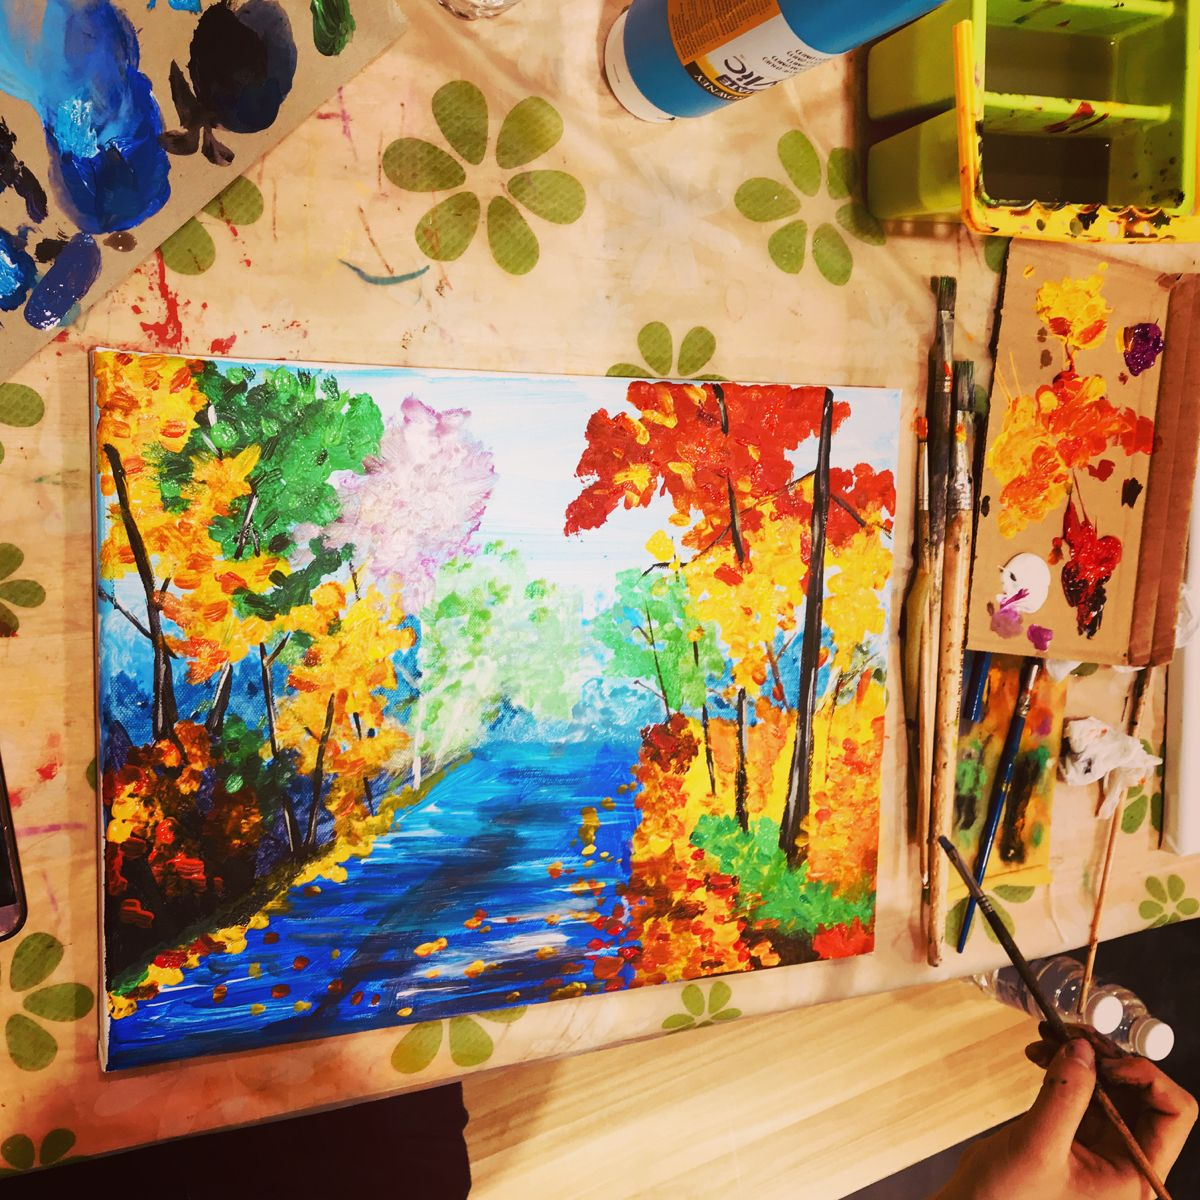 Acrylic Painting Scenery Painting Acrylic Painting Canvas Beginner Painting